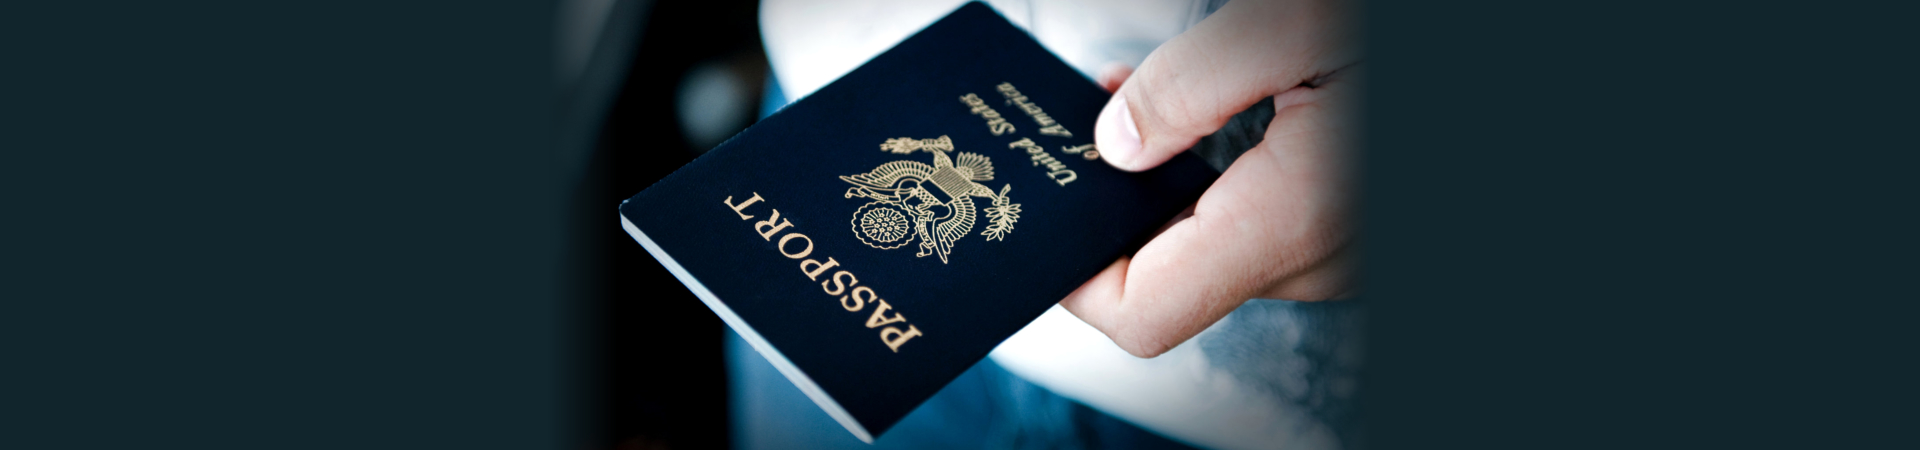 Image of someone holding a passport